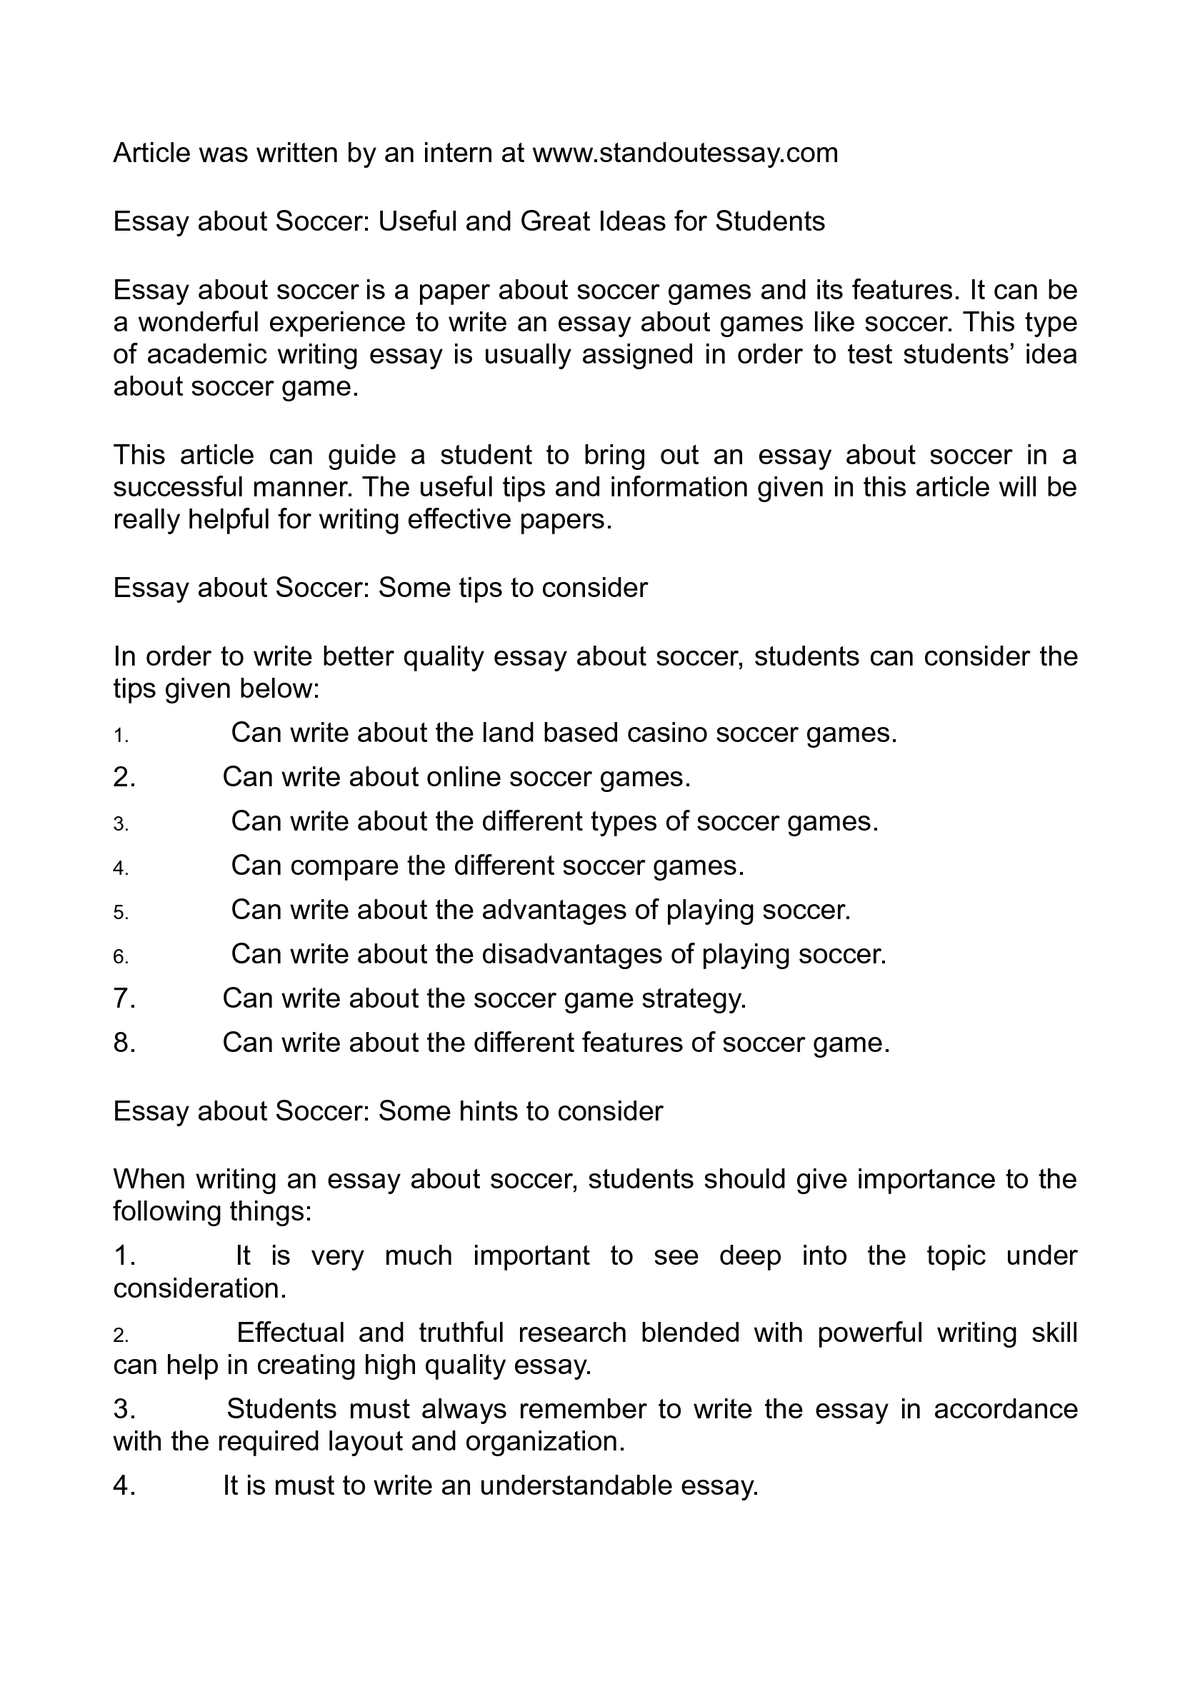 essay about soccer useful and great ideas for students